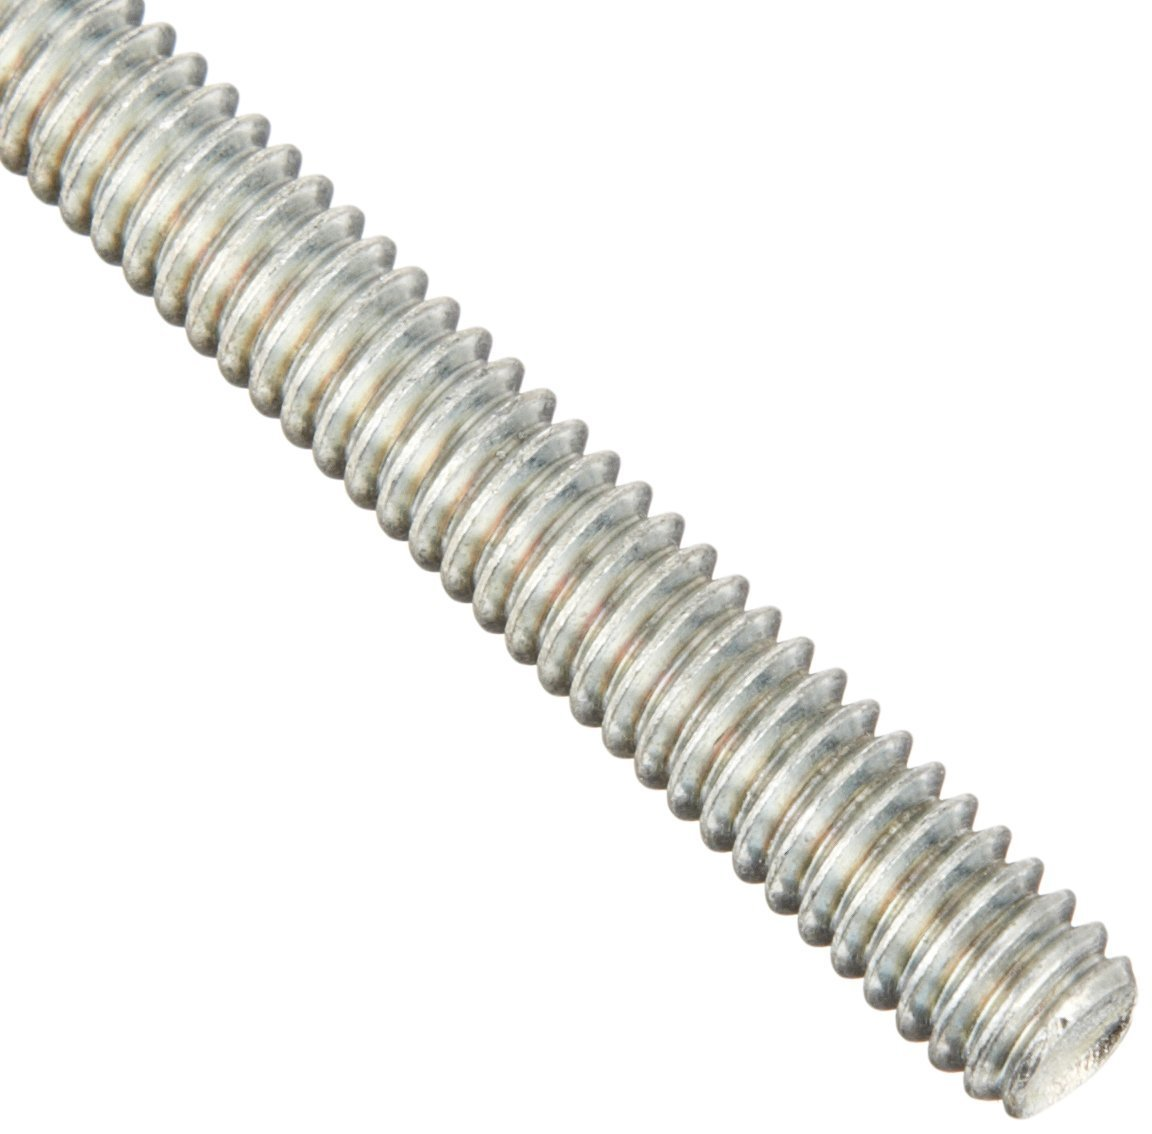 Low-Strength Zinc-Plated Steel Threaded Rod, 1''-8 Thread Size, 3 Feet Long